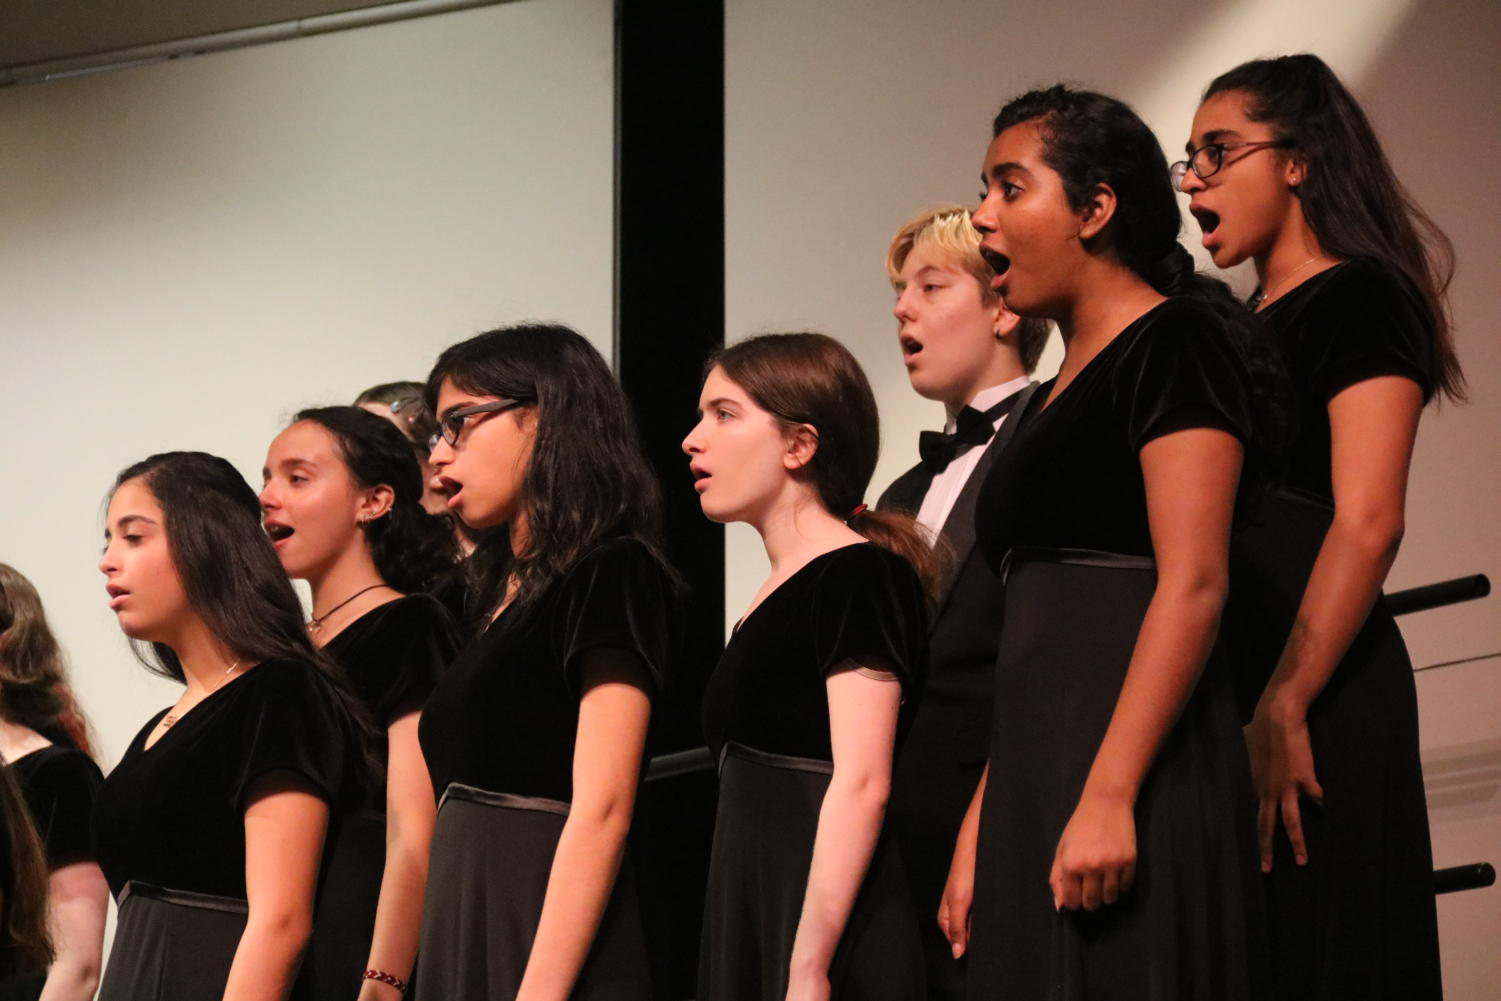 Chorale Choir performs at the Choir Fall Concert on Tuesday at CHS Auditorium. This annual concert showcases all the variant choirs including Madrigals, Treble, Tenor Bass, Chorale, Kantorei and A Cappella.